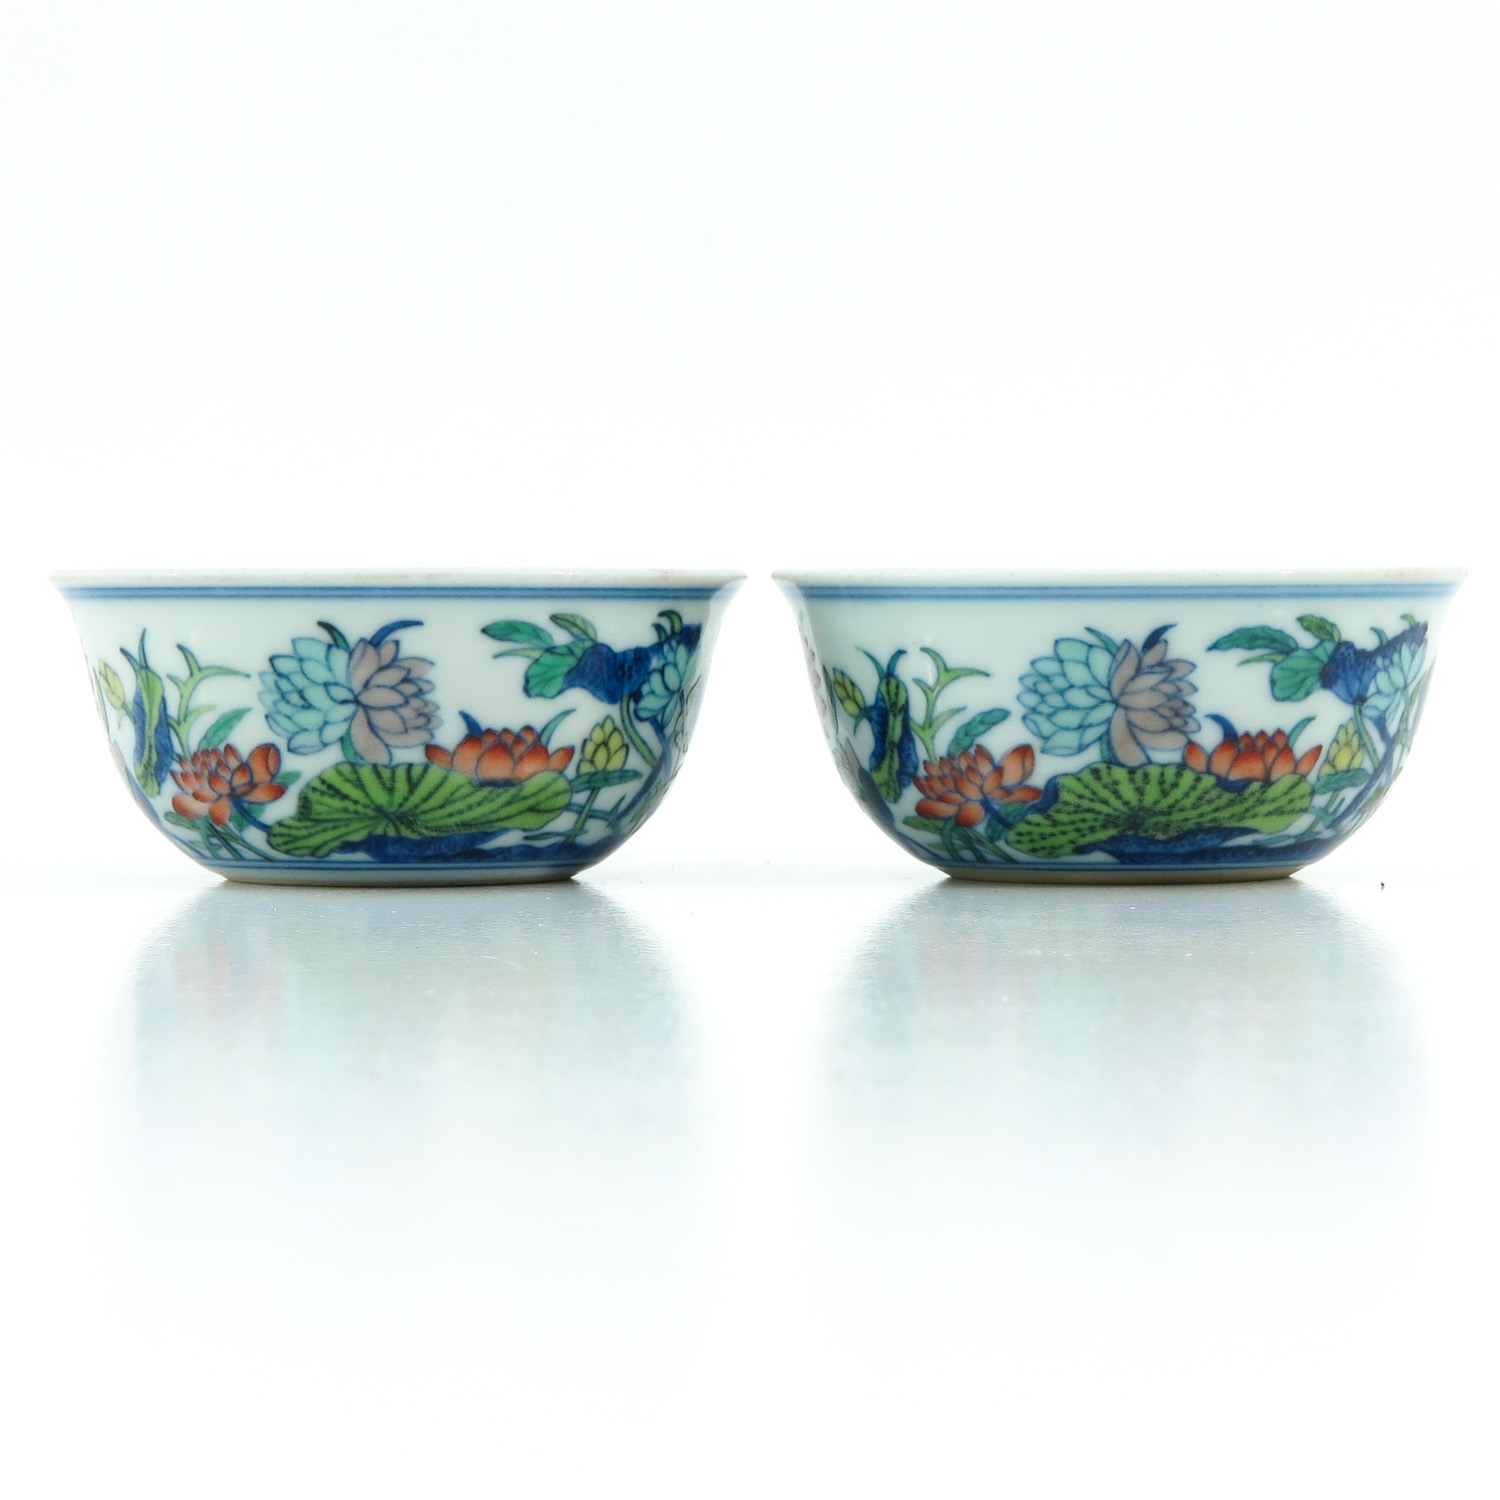 A Pair of Doucai Decor Cups - Image 3 of 10